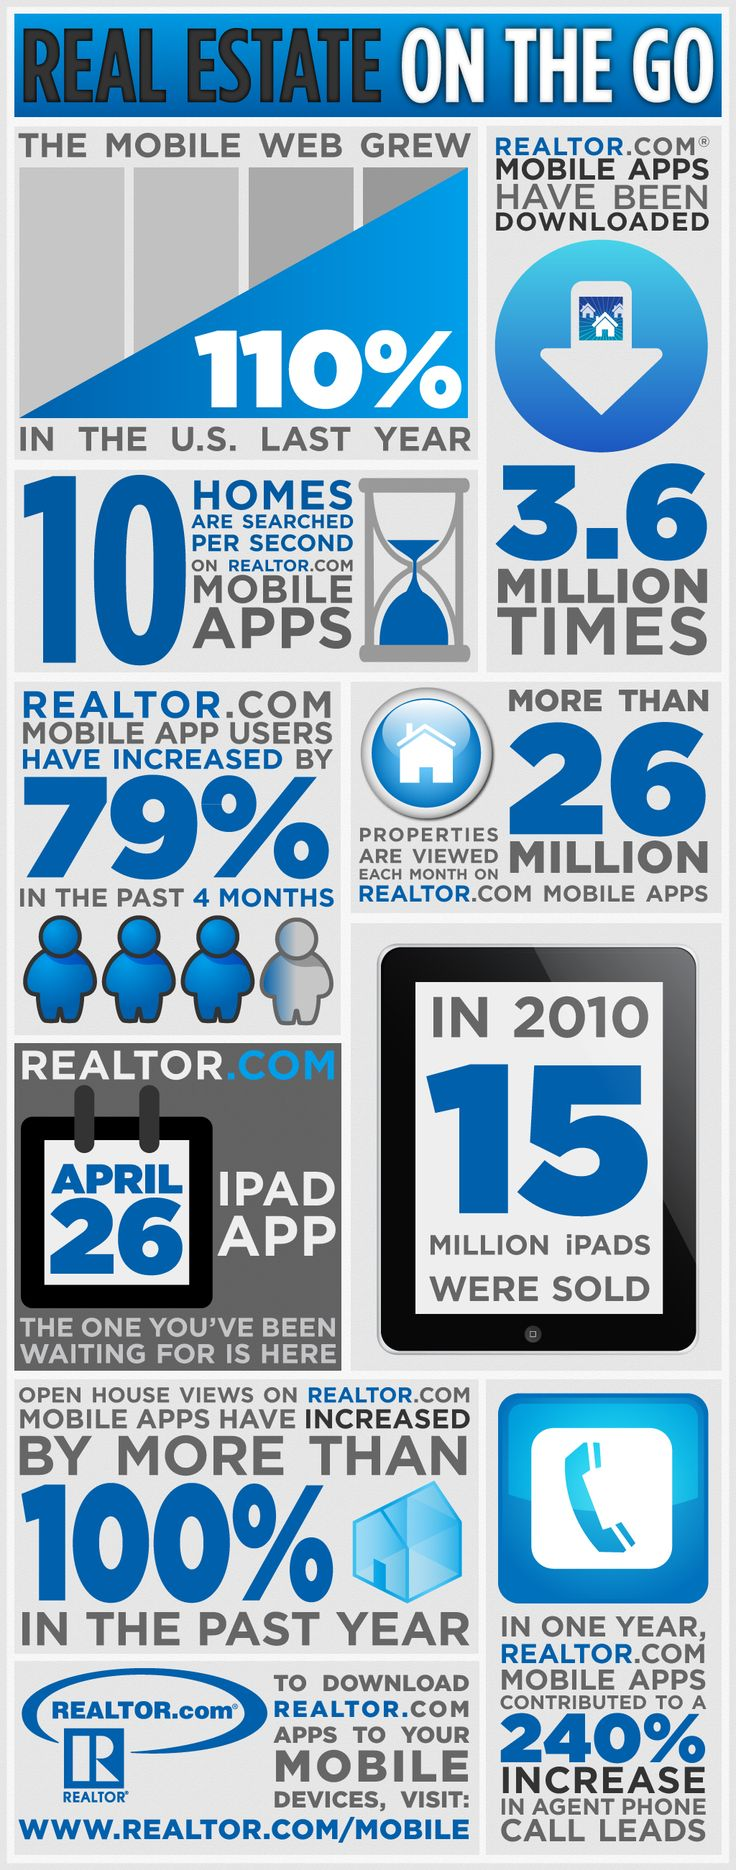 Read about Visualizing Real Estate Data With Infographics and more Pros on realtor.com.